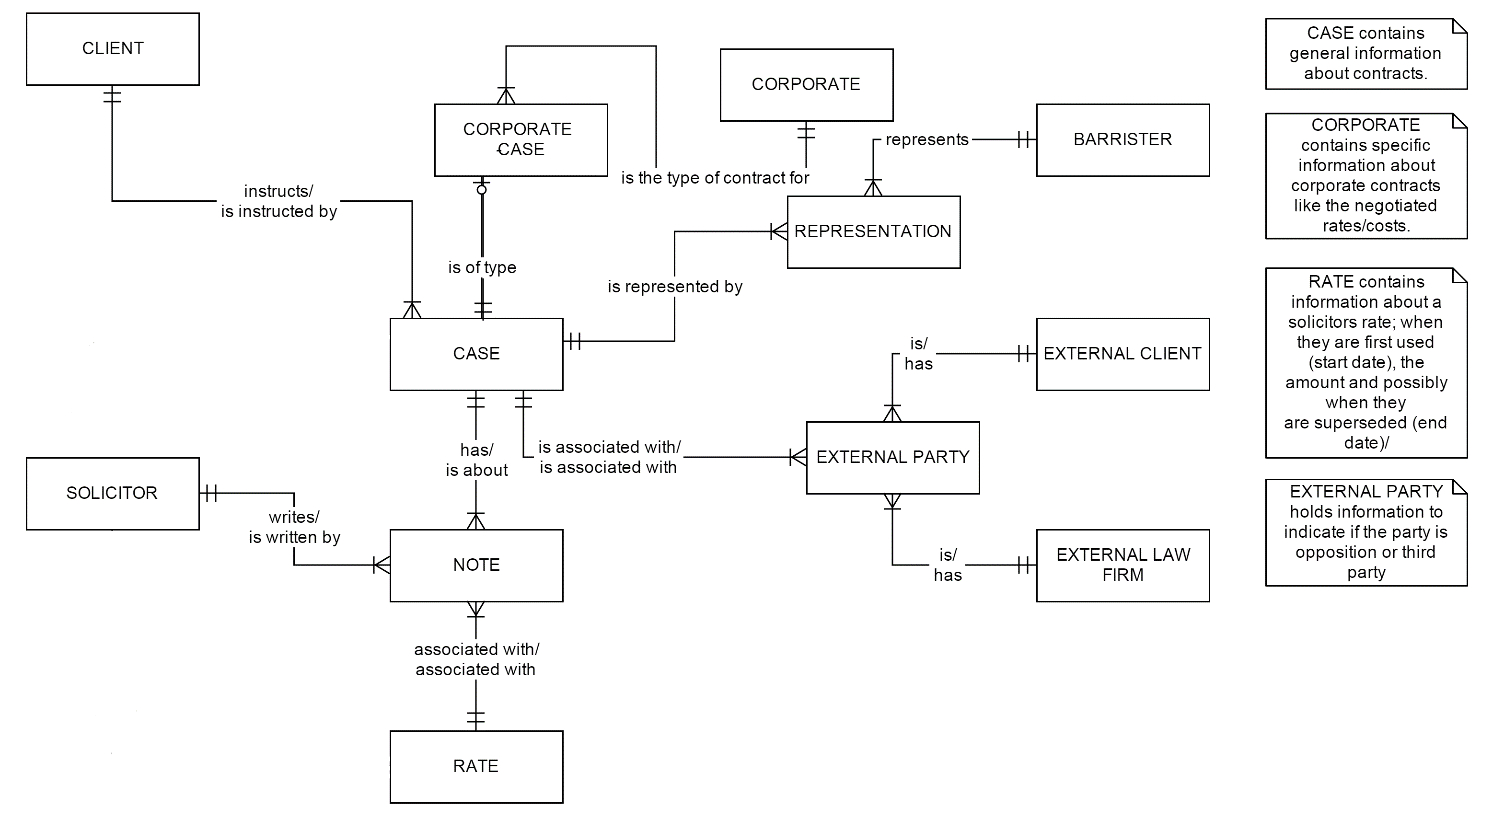 Trying To Understand Cardinality In An Entity Relationship Diagram throughout Entity Relationship Diagram Cardinality Examples